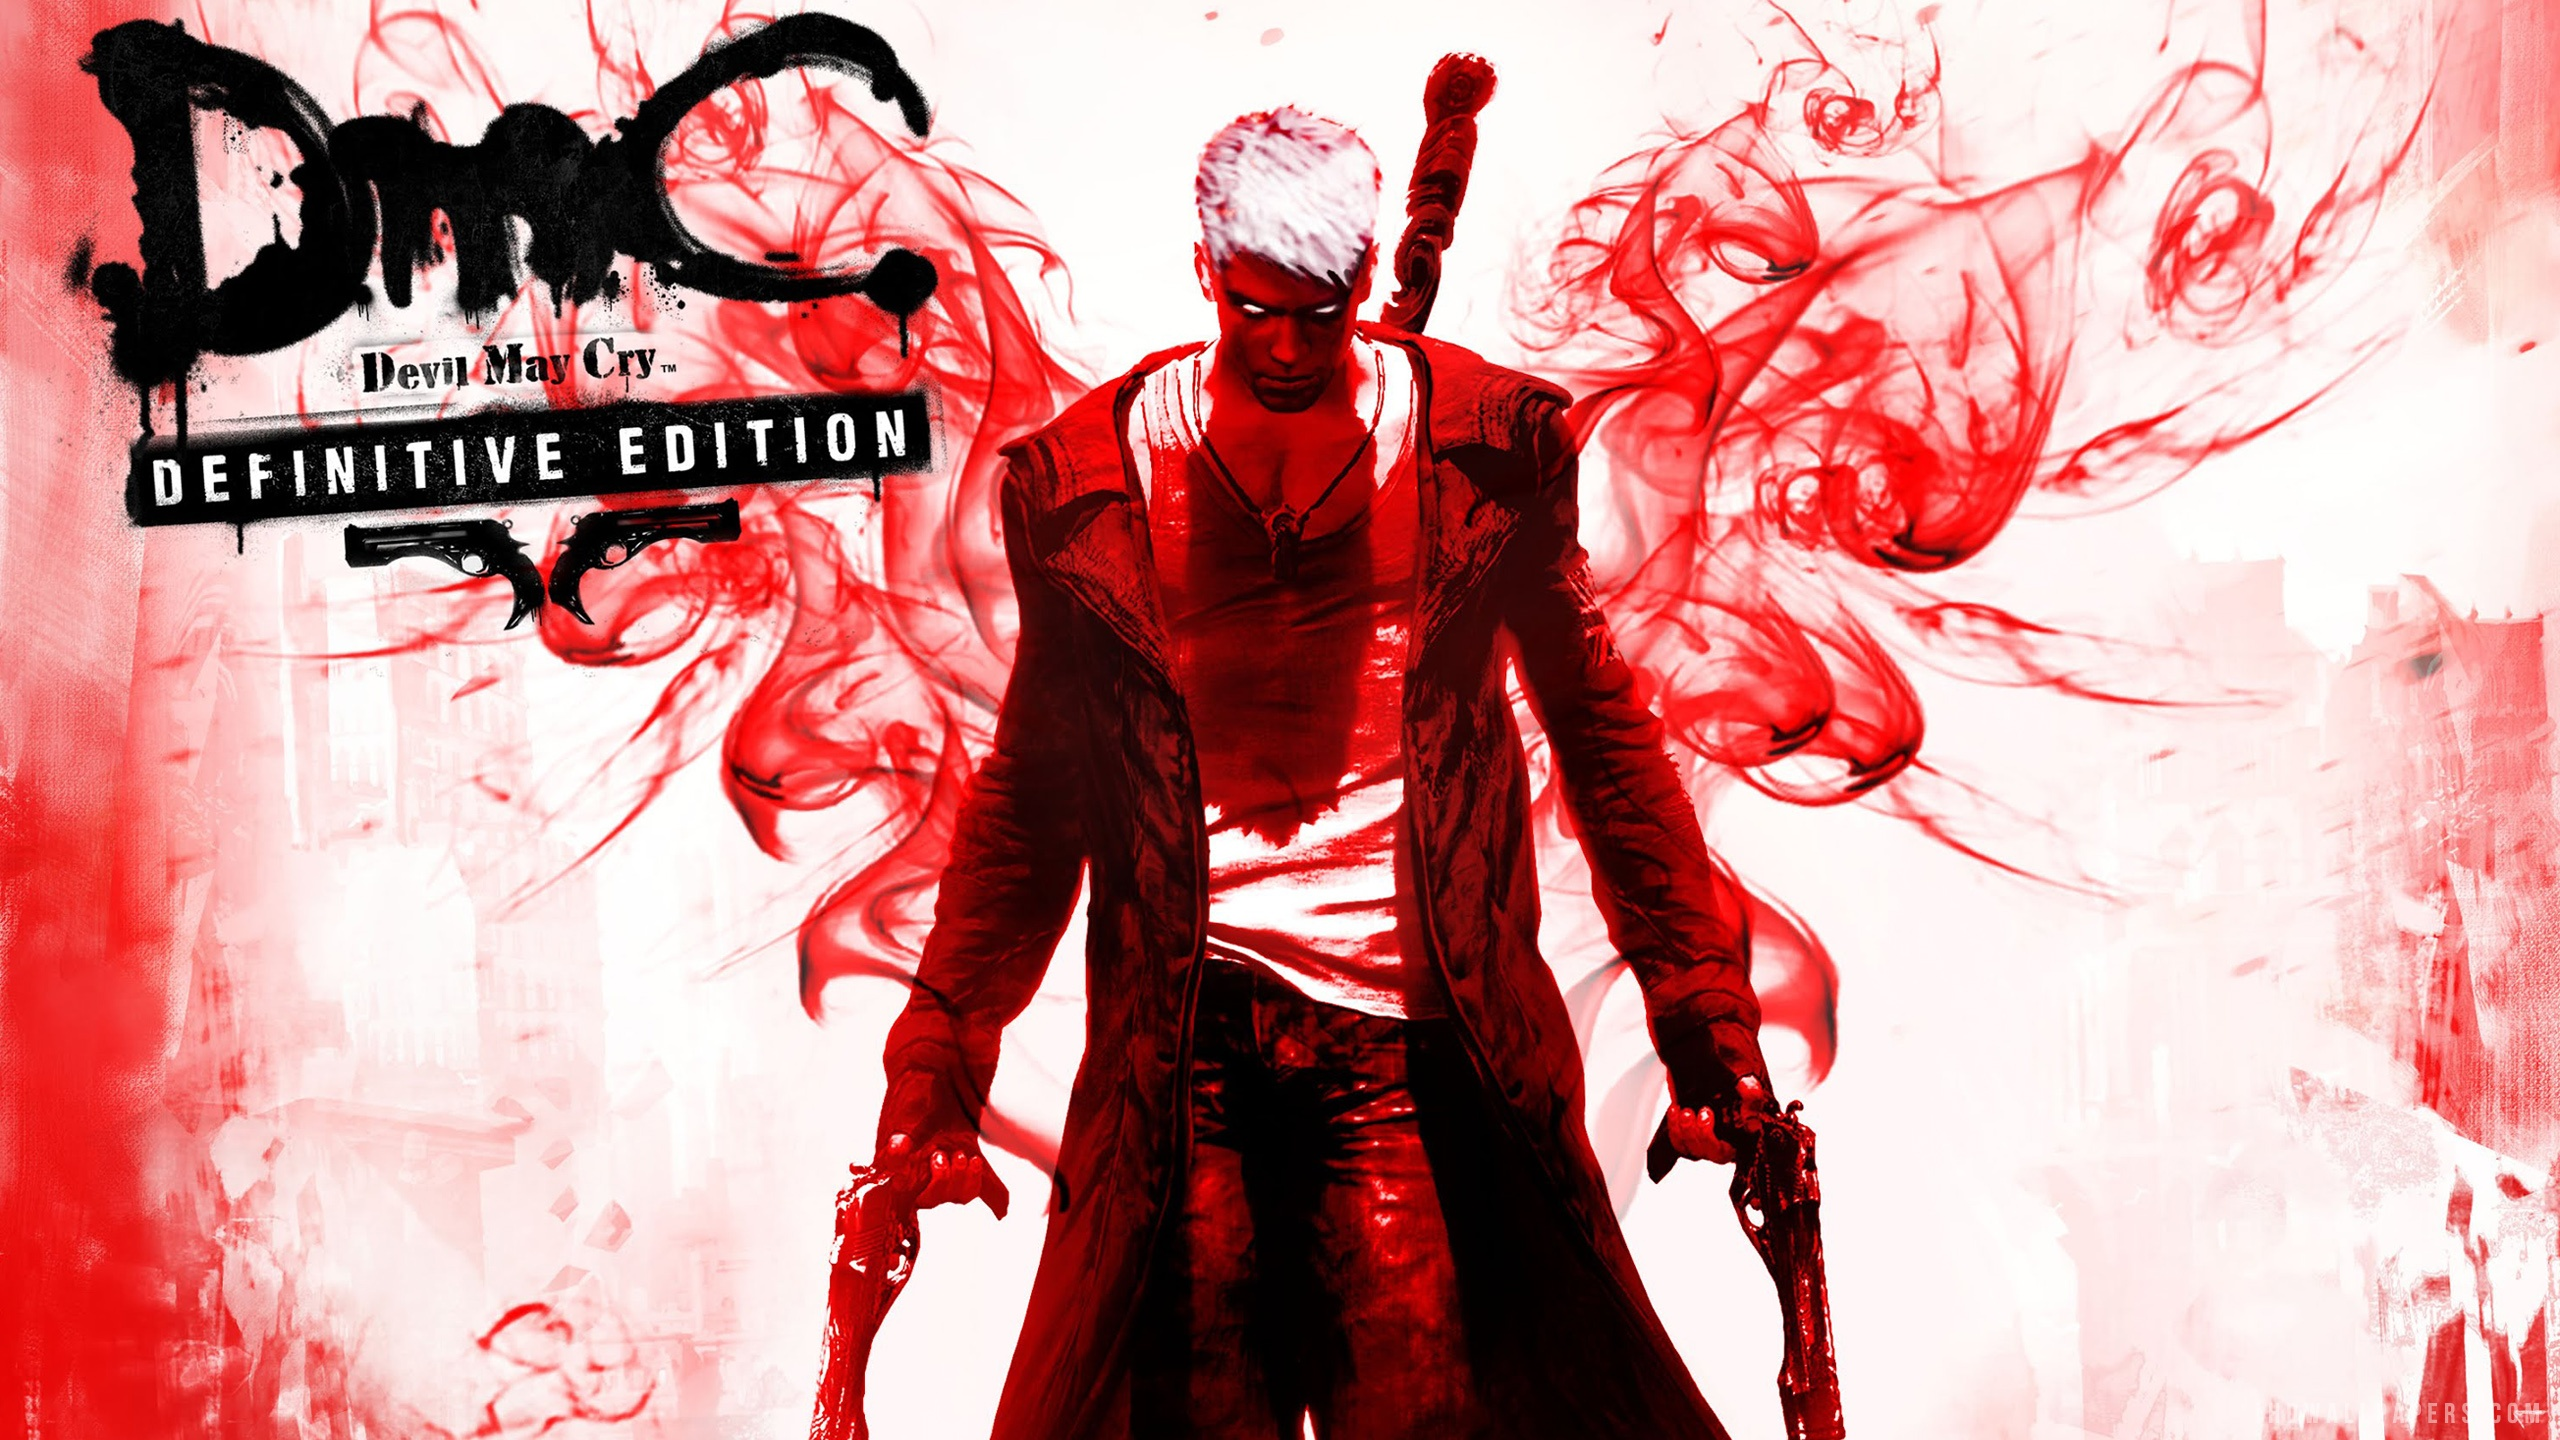 DmC Devil May Cry Definitive Edition HD Wallpaper   iHD Wallpapers 2560x1440